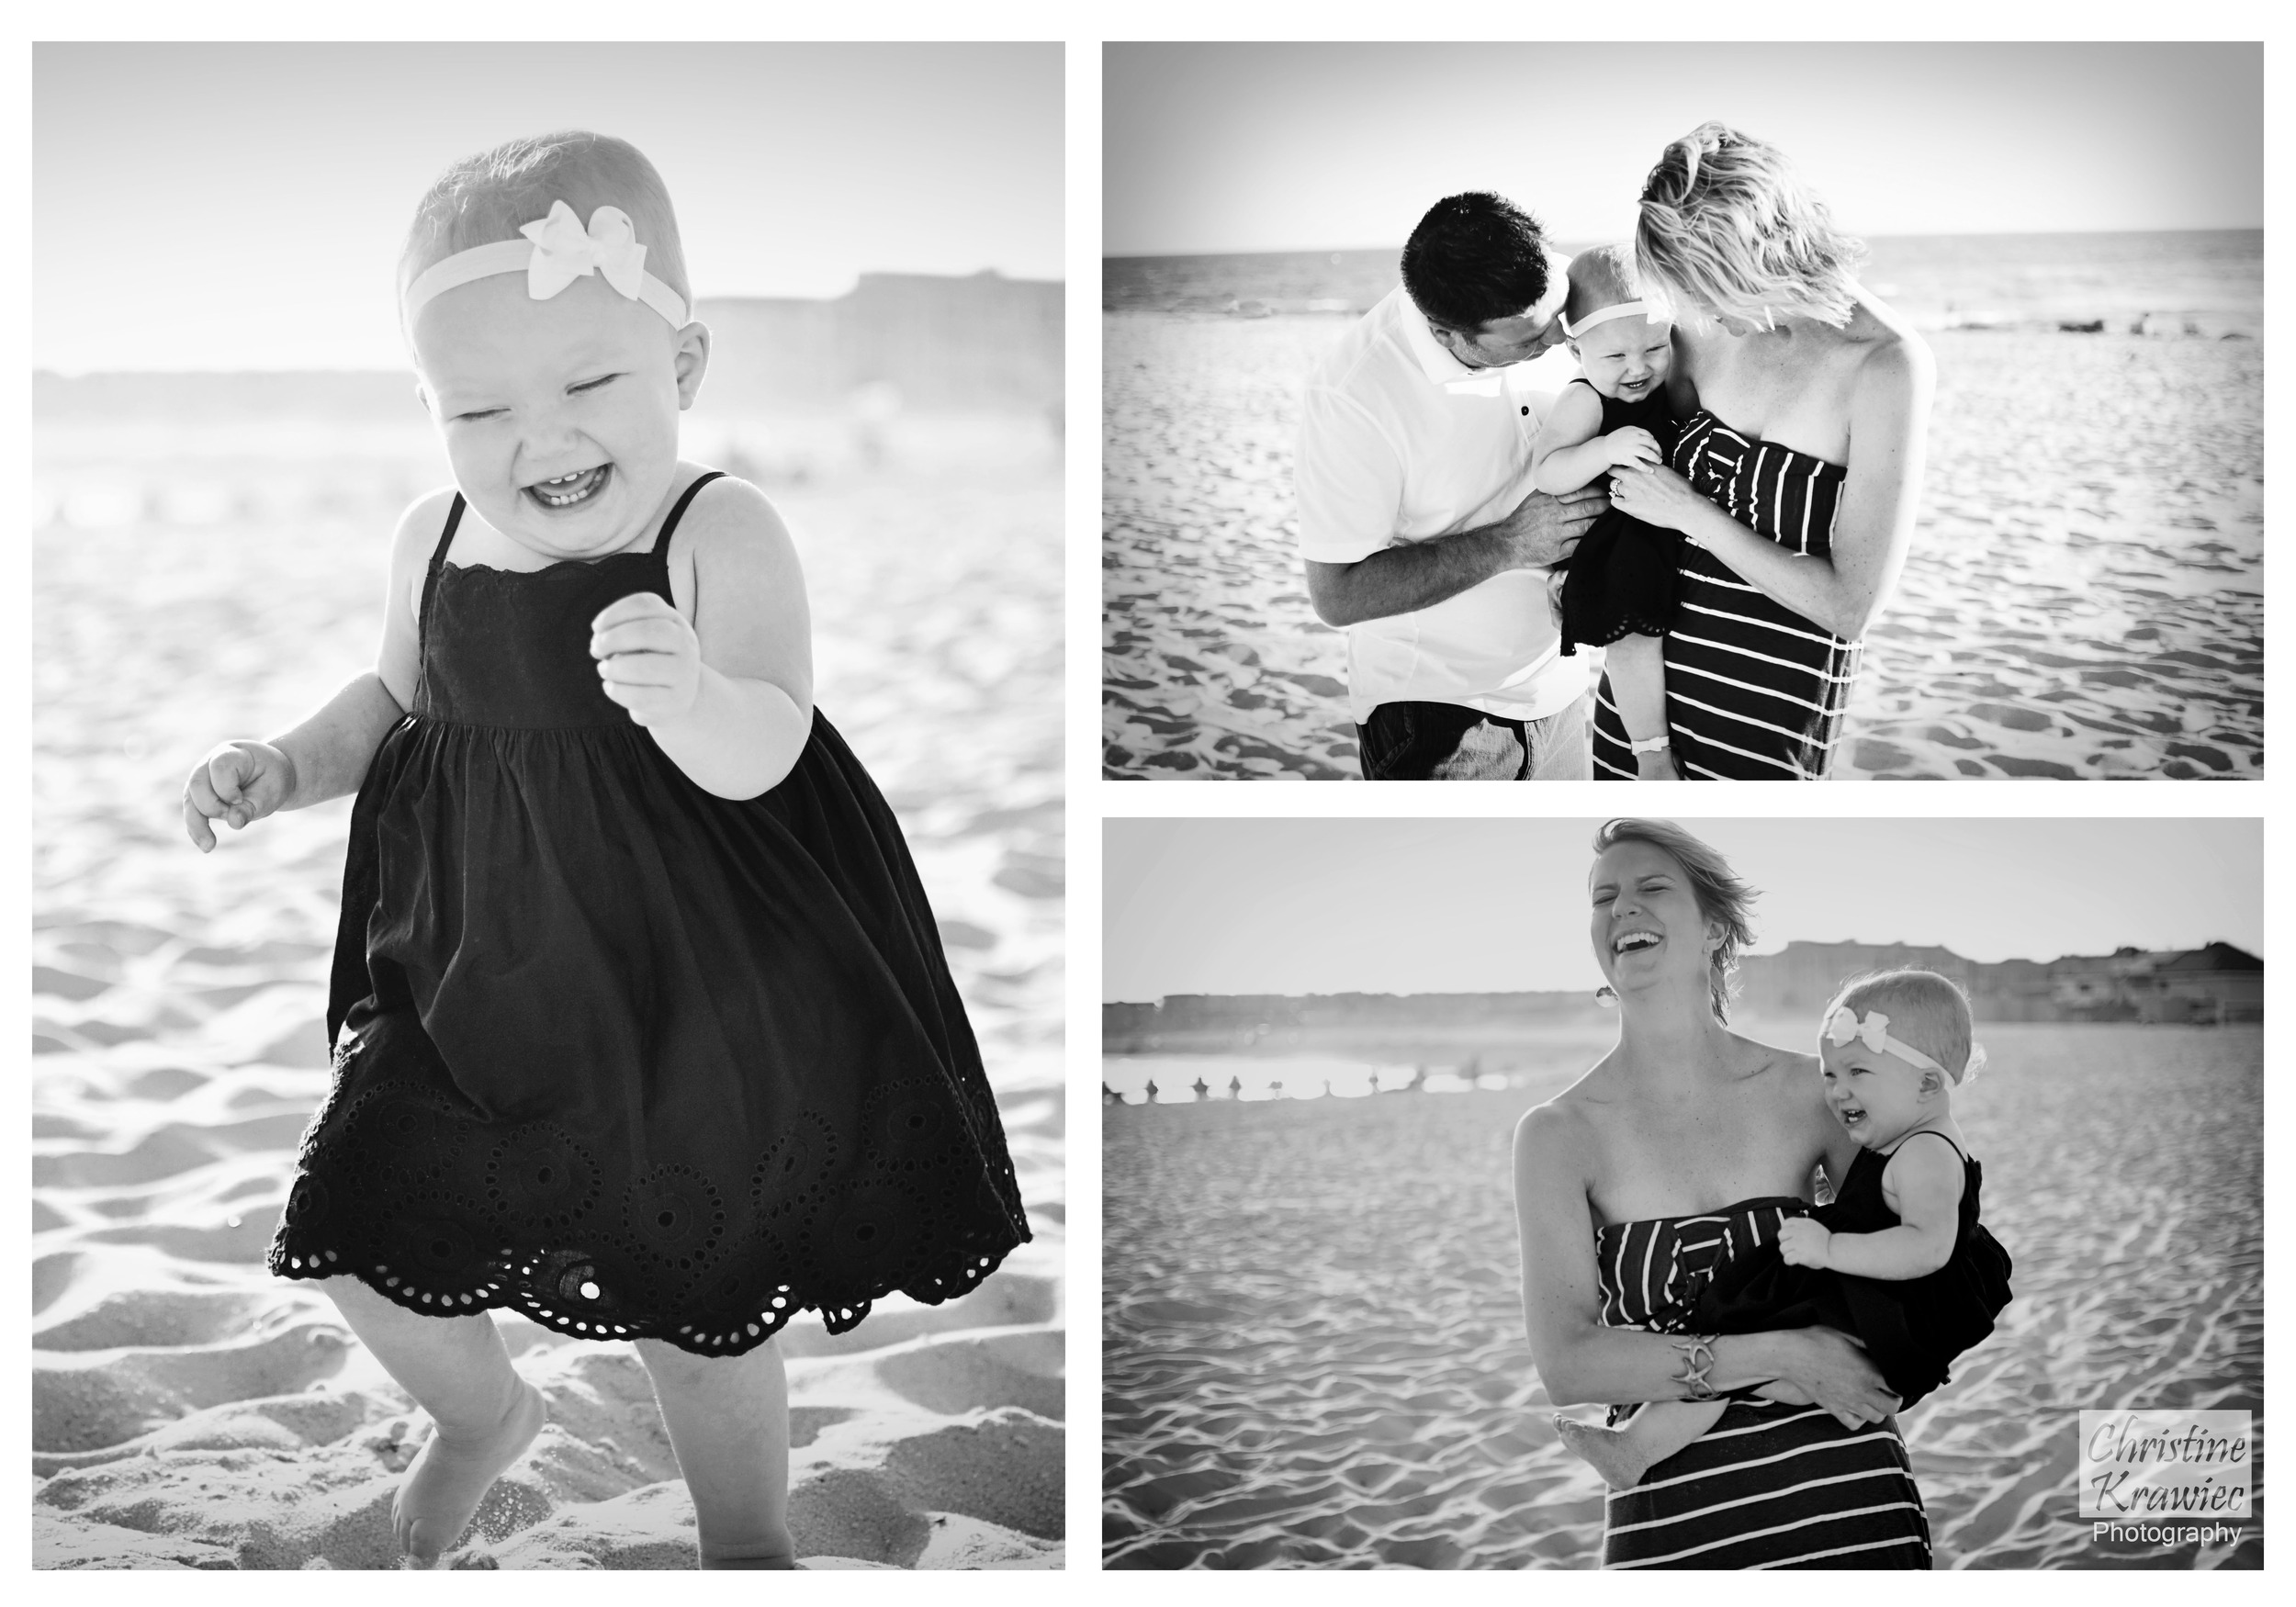 Christine Krawiec Photography - Cape May Family Photographer